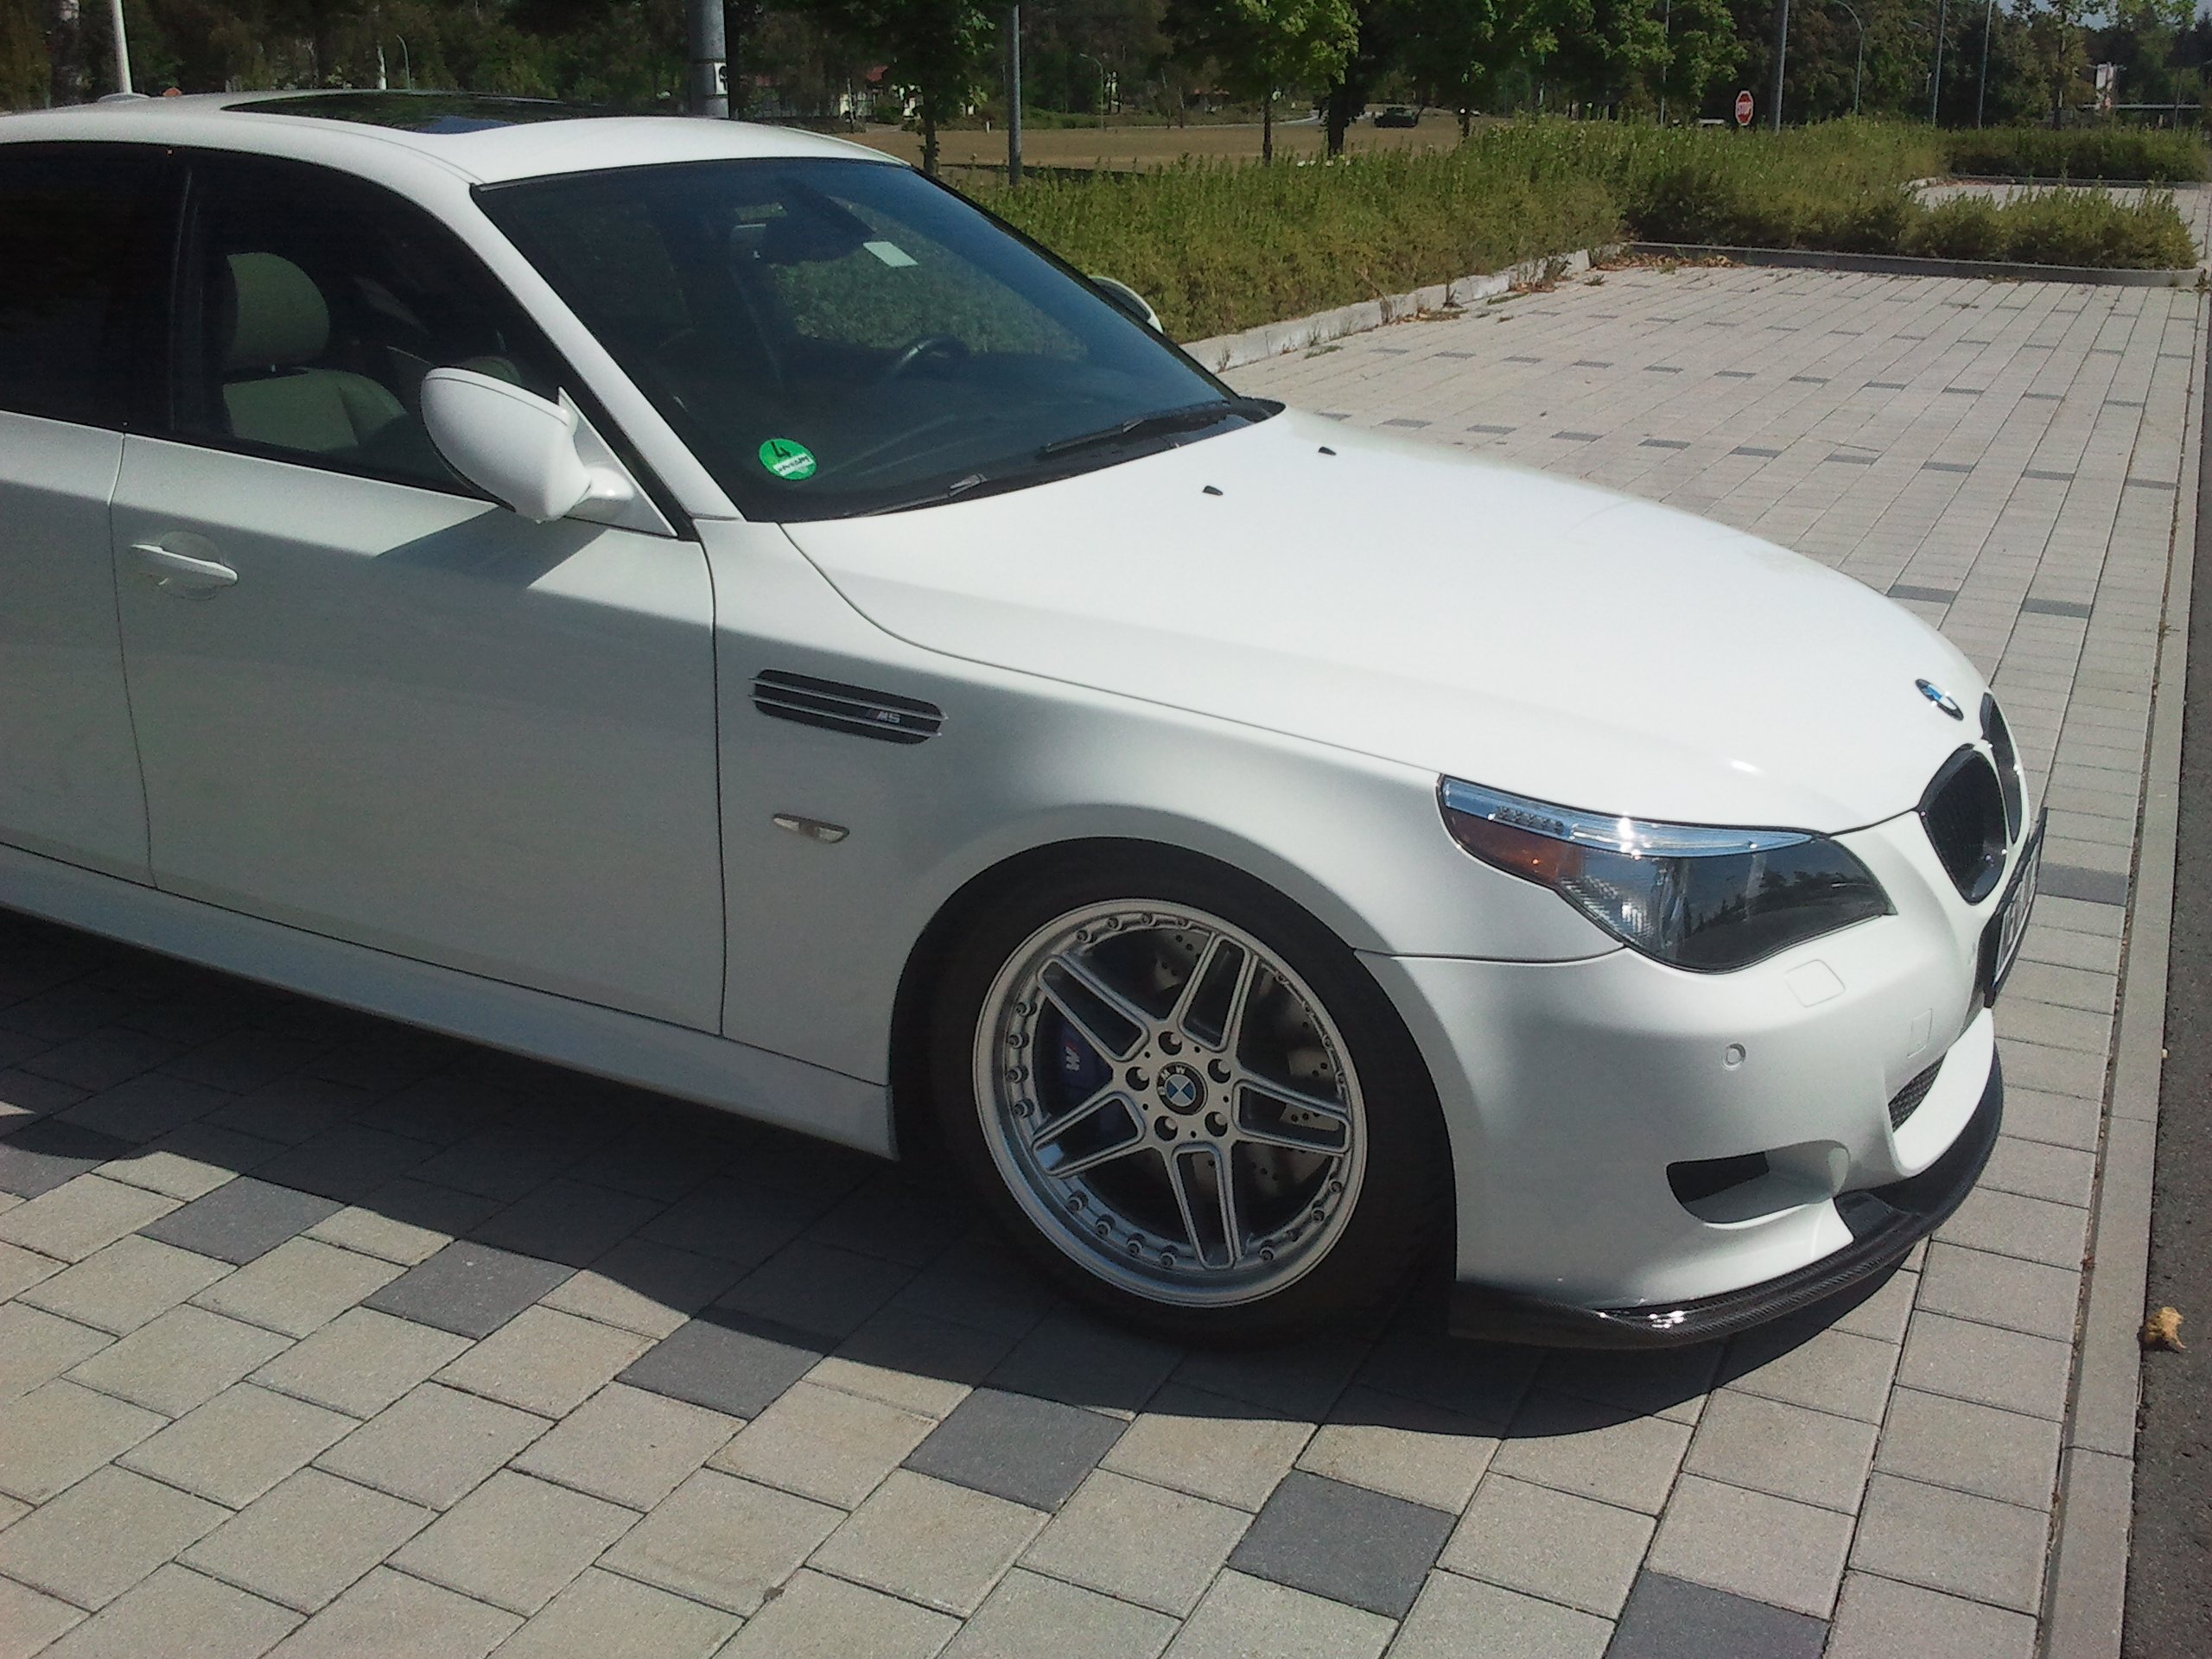 E60 0310 For Sale 2006 BMW M5 Alpine White  BMW M5 Forum and